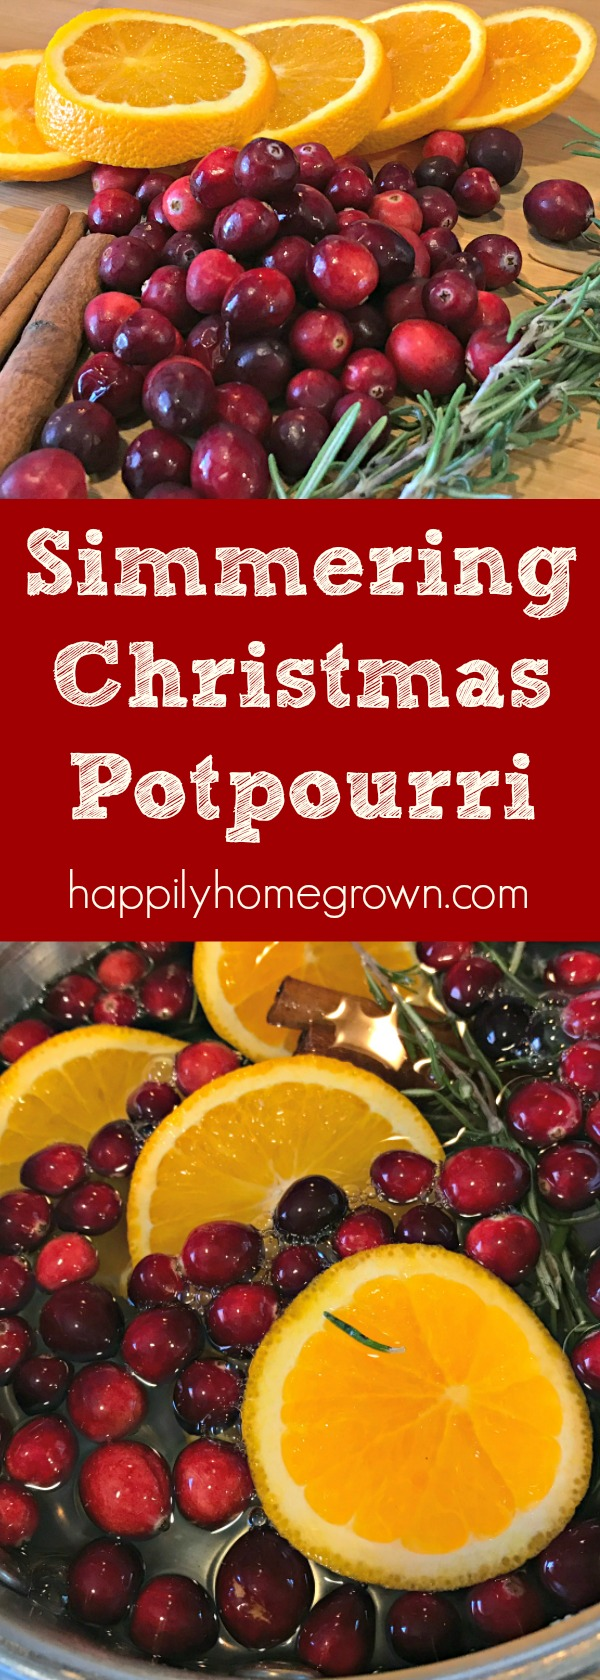 A quick DIY simmering Christmas potpourri that will make your entire home smell wonderful and ready for the holidays without synthetic fragrances. #HandmadeChristmas